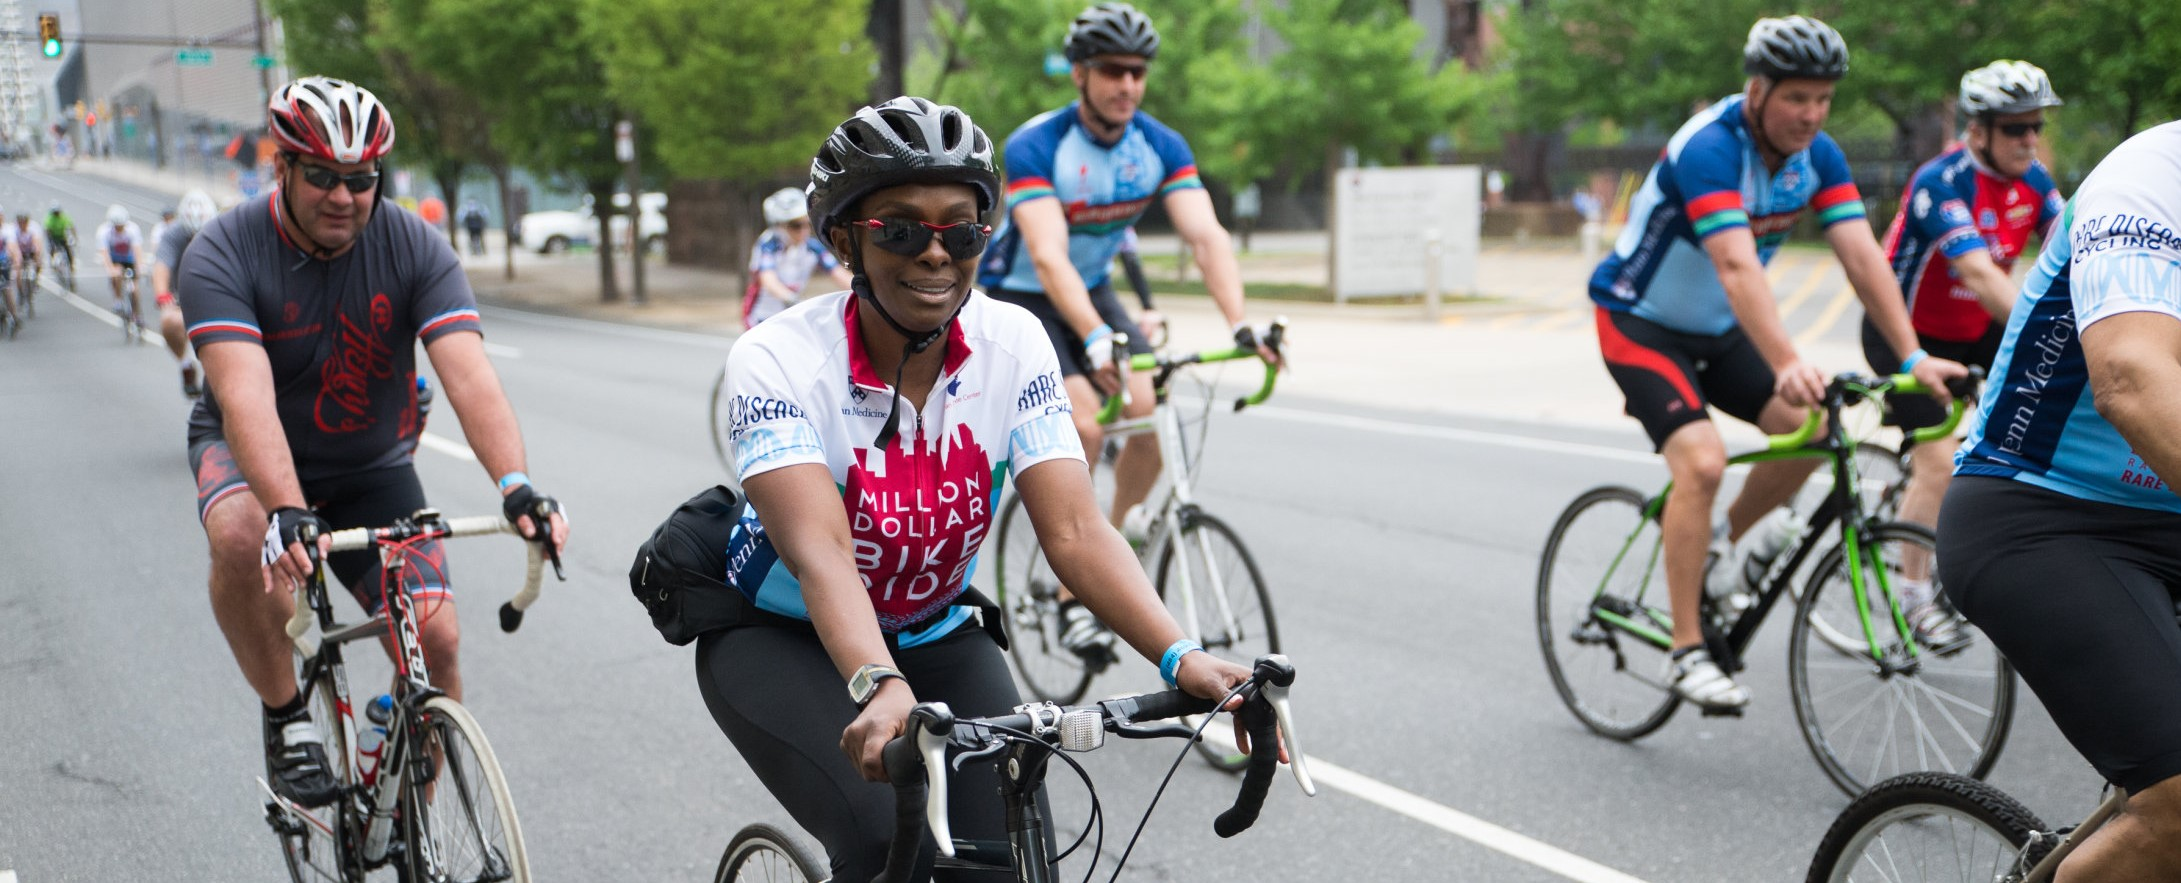 Million Dollar Bike Ride – Join our SETBP1 Strong Team